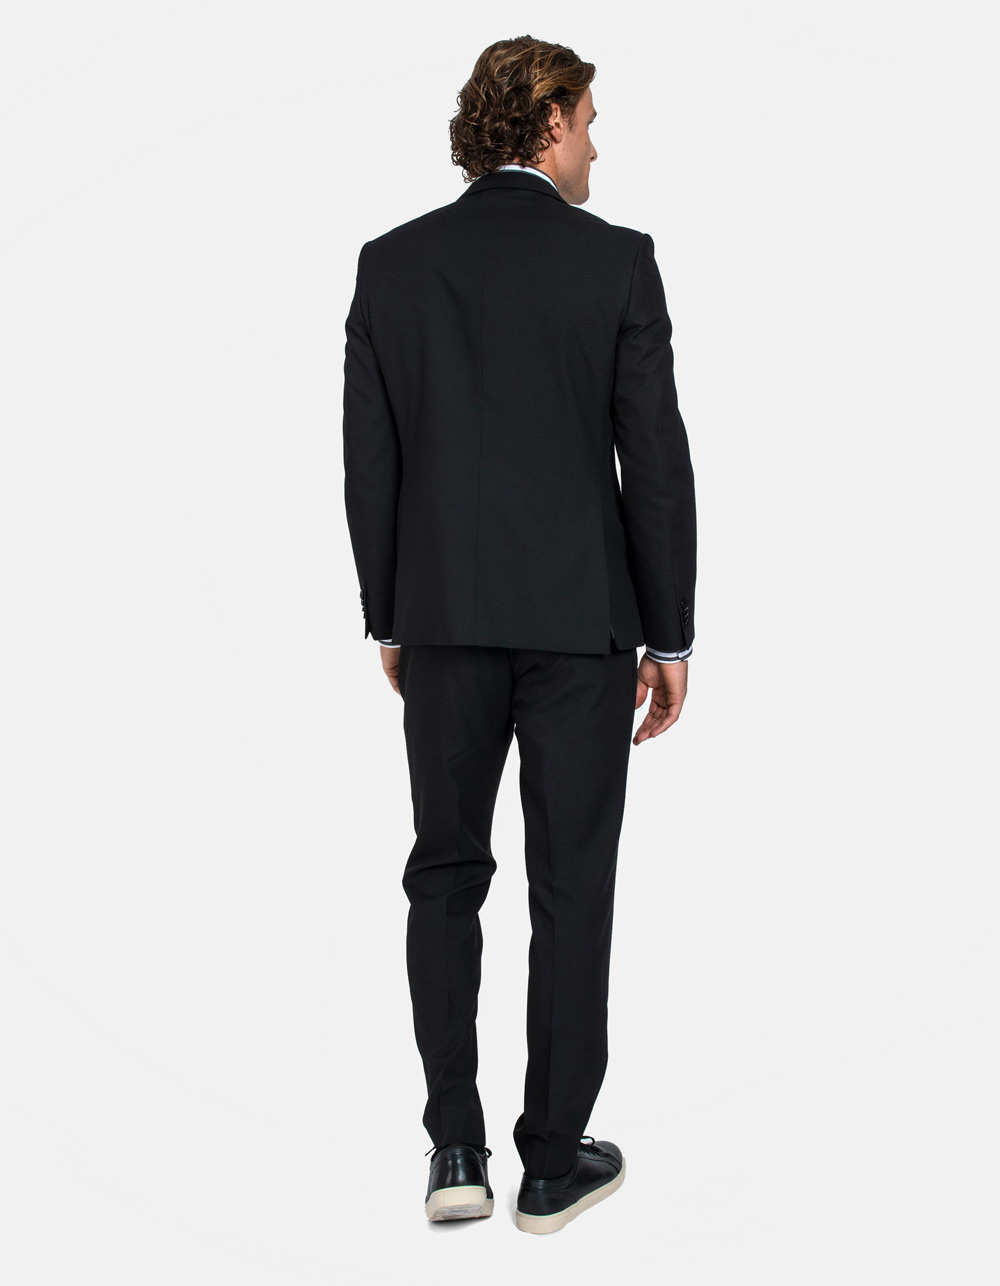 Black plain suit - Backside